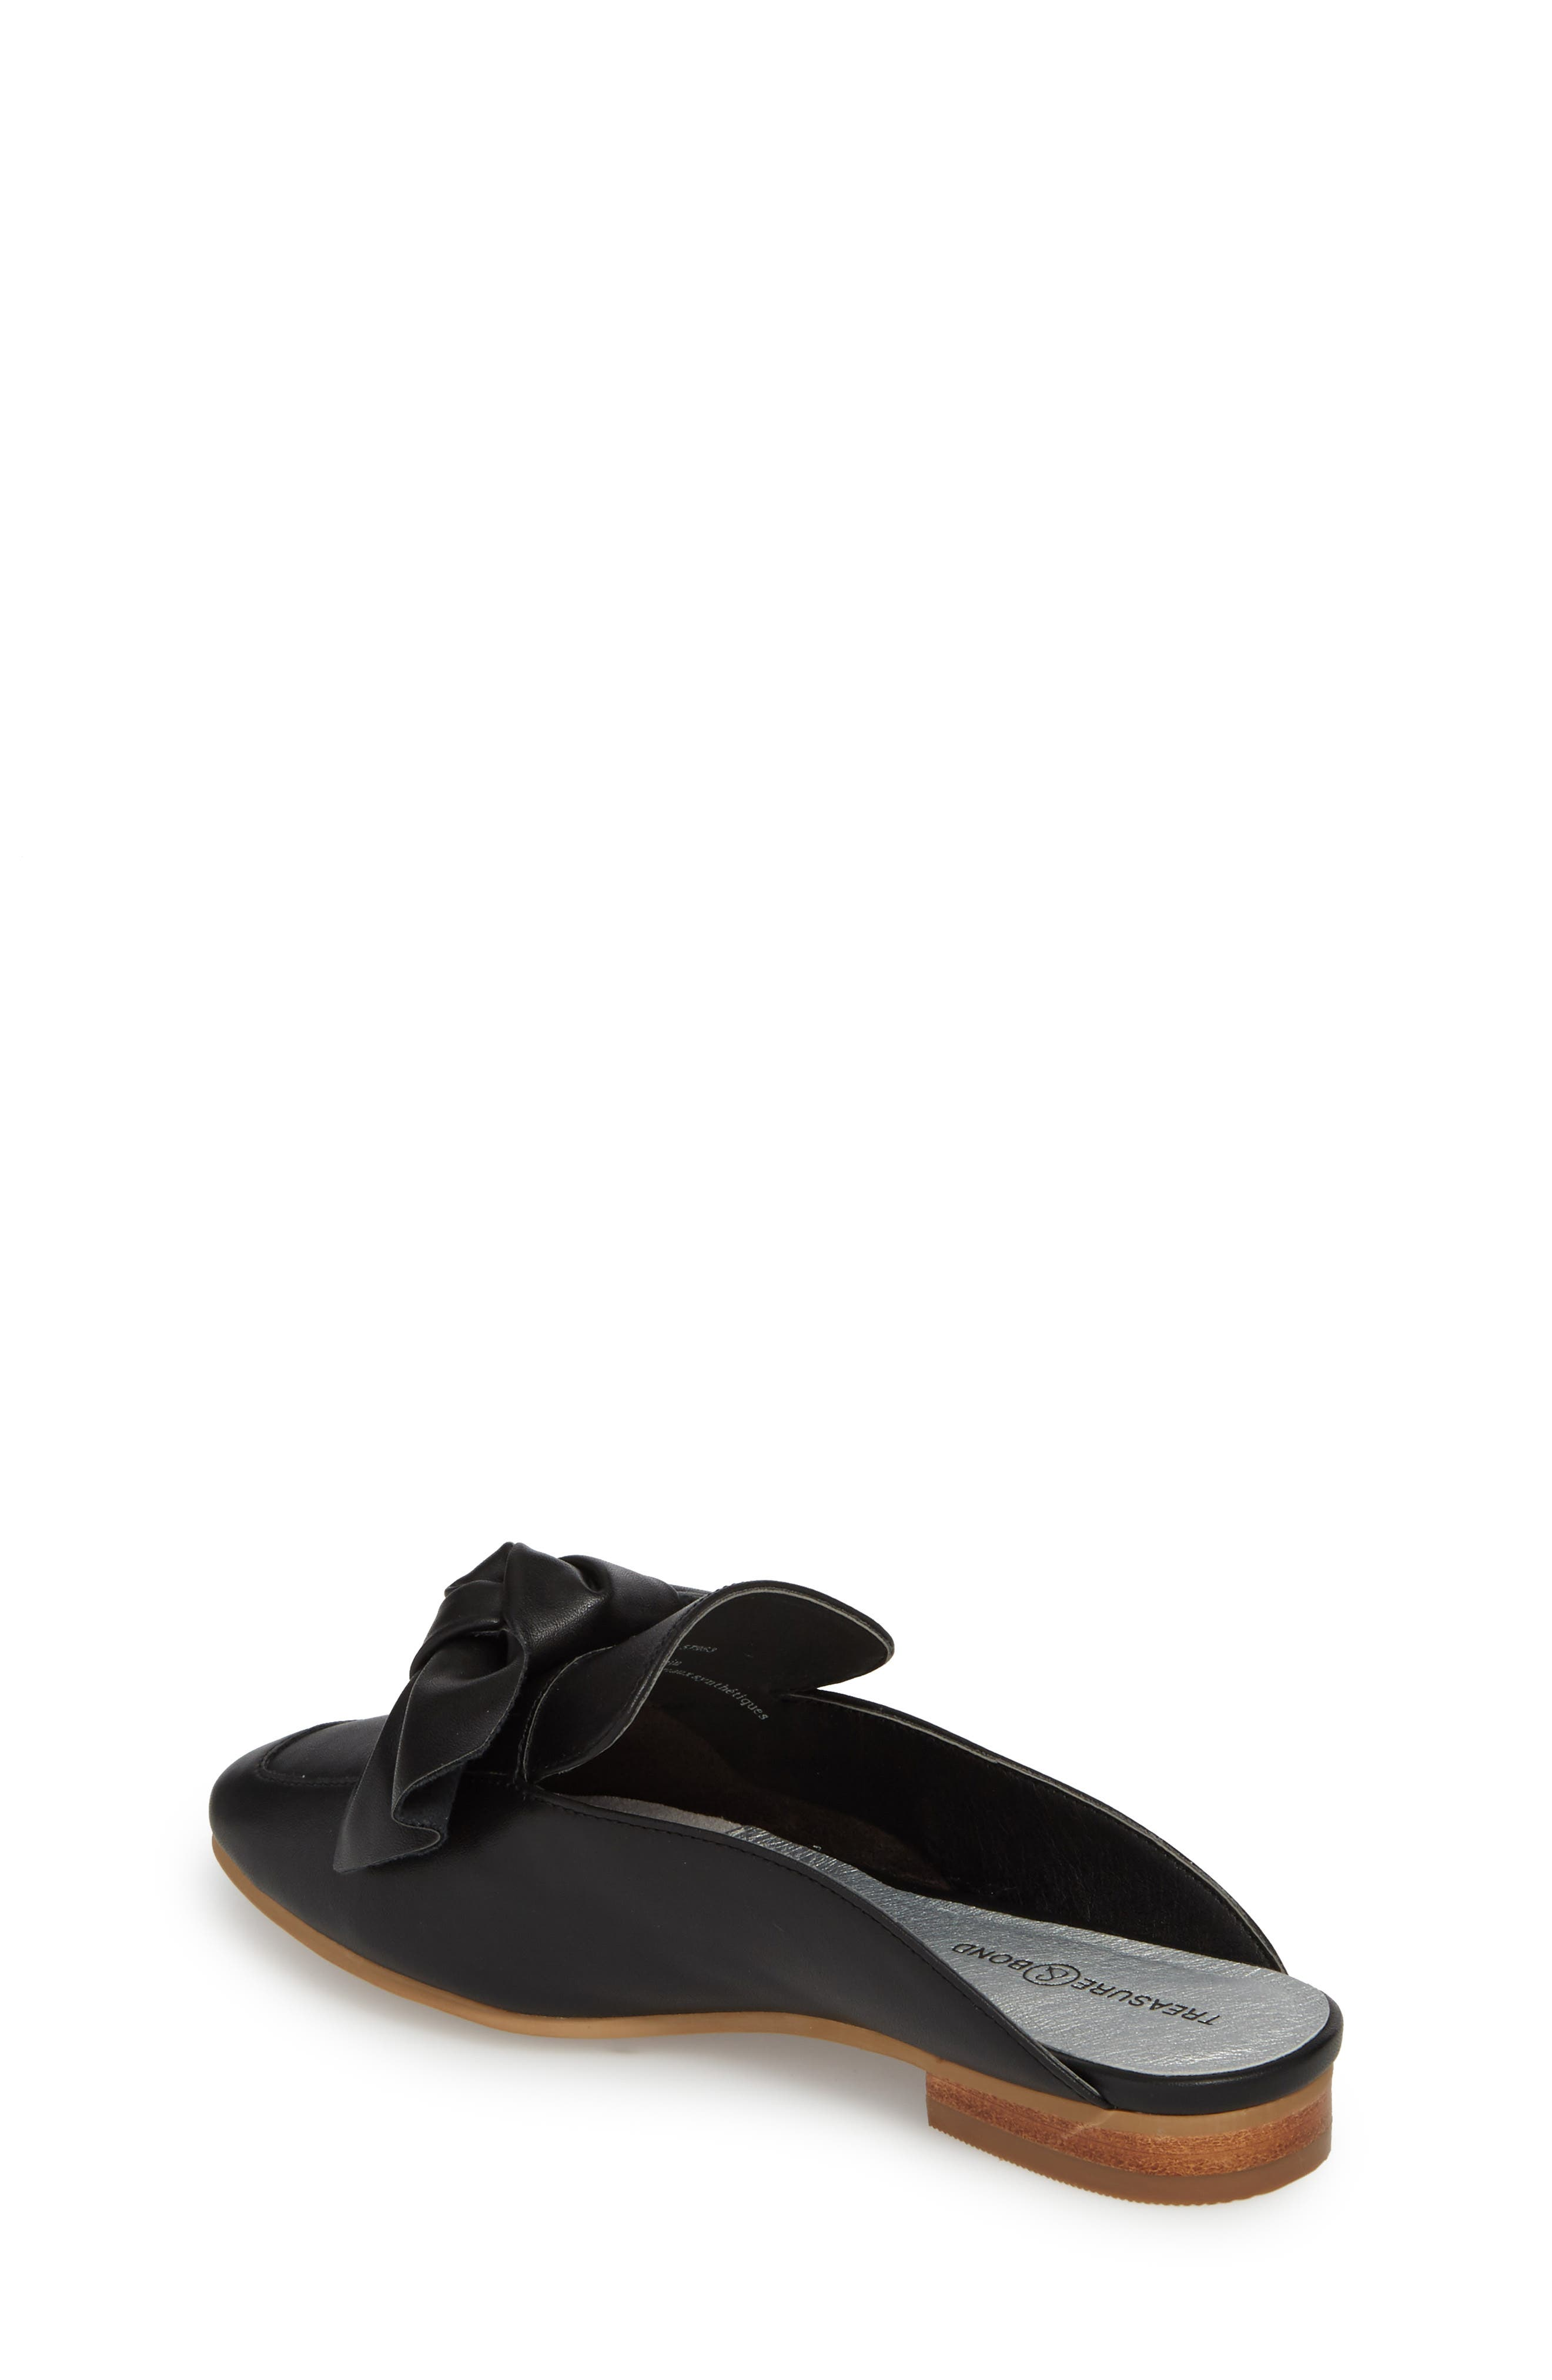 Gina Knotted Loafer Mule,                             Alternate thumbnail 2, color,                             001